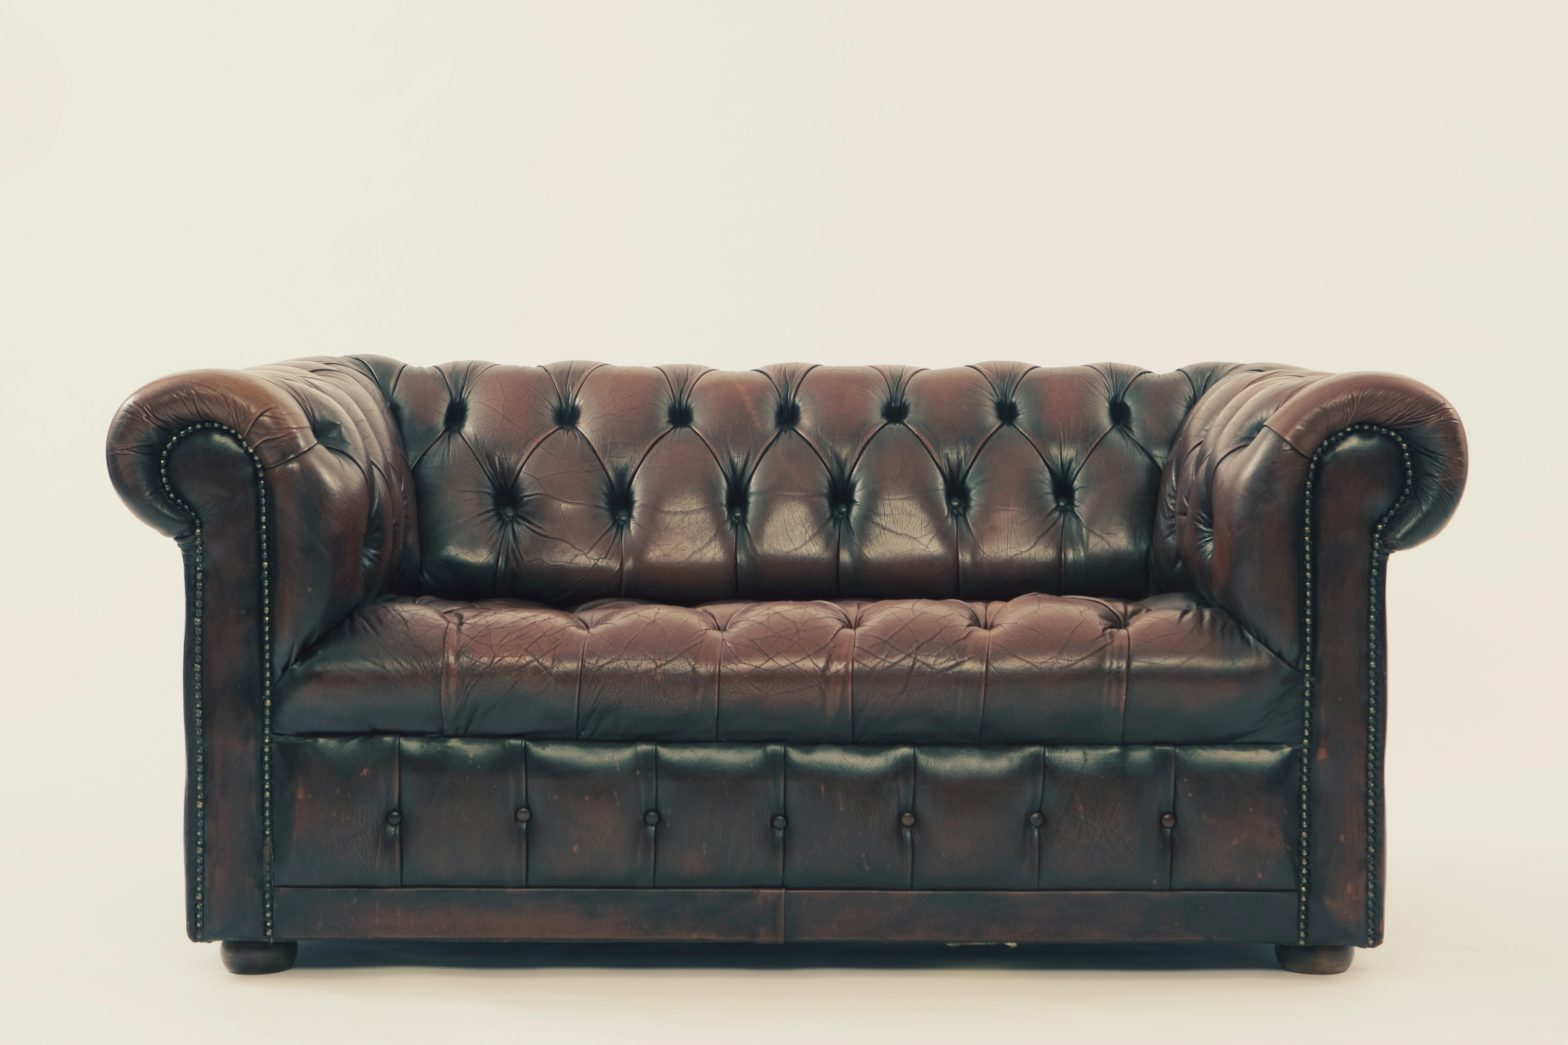 Living Room And Board Furniture- How To Choose The Right One?